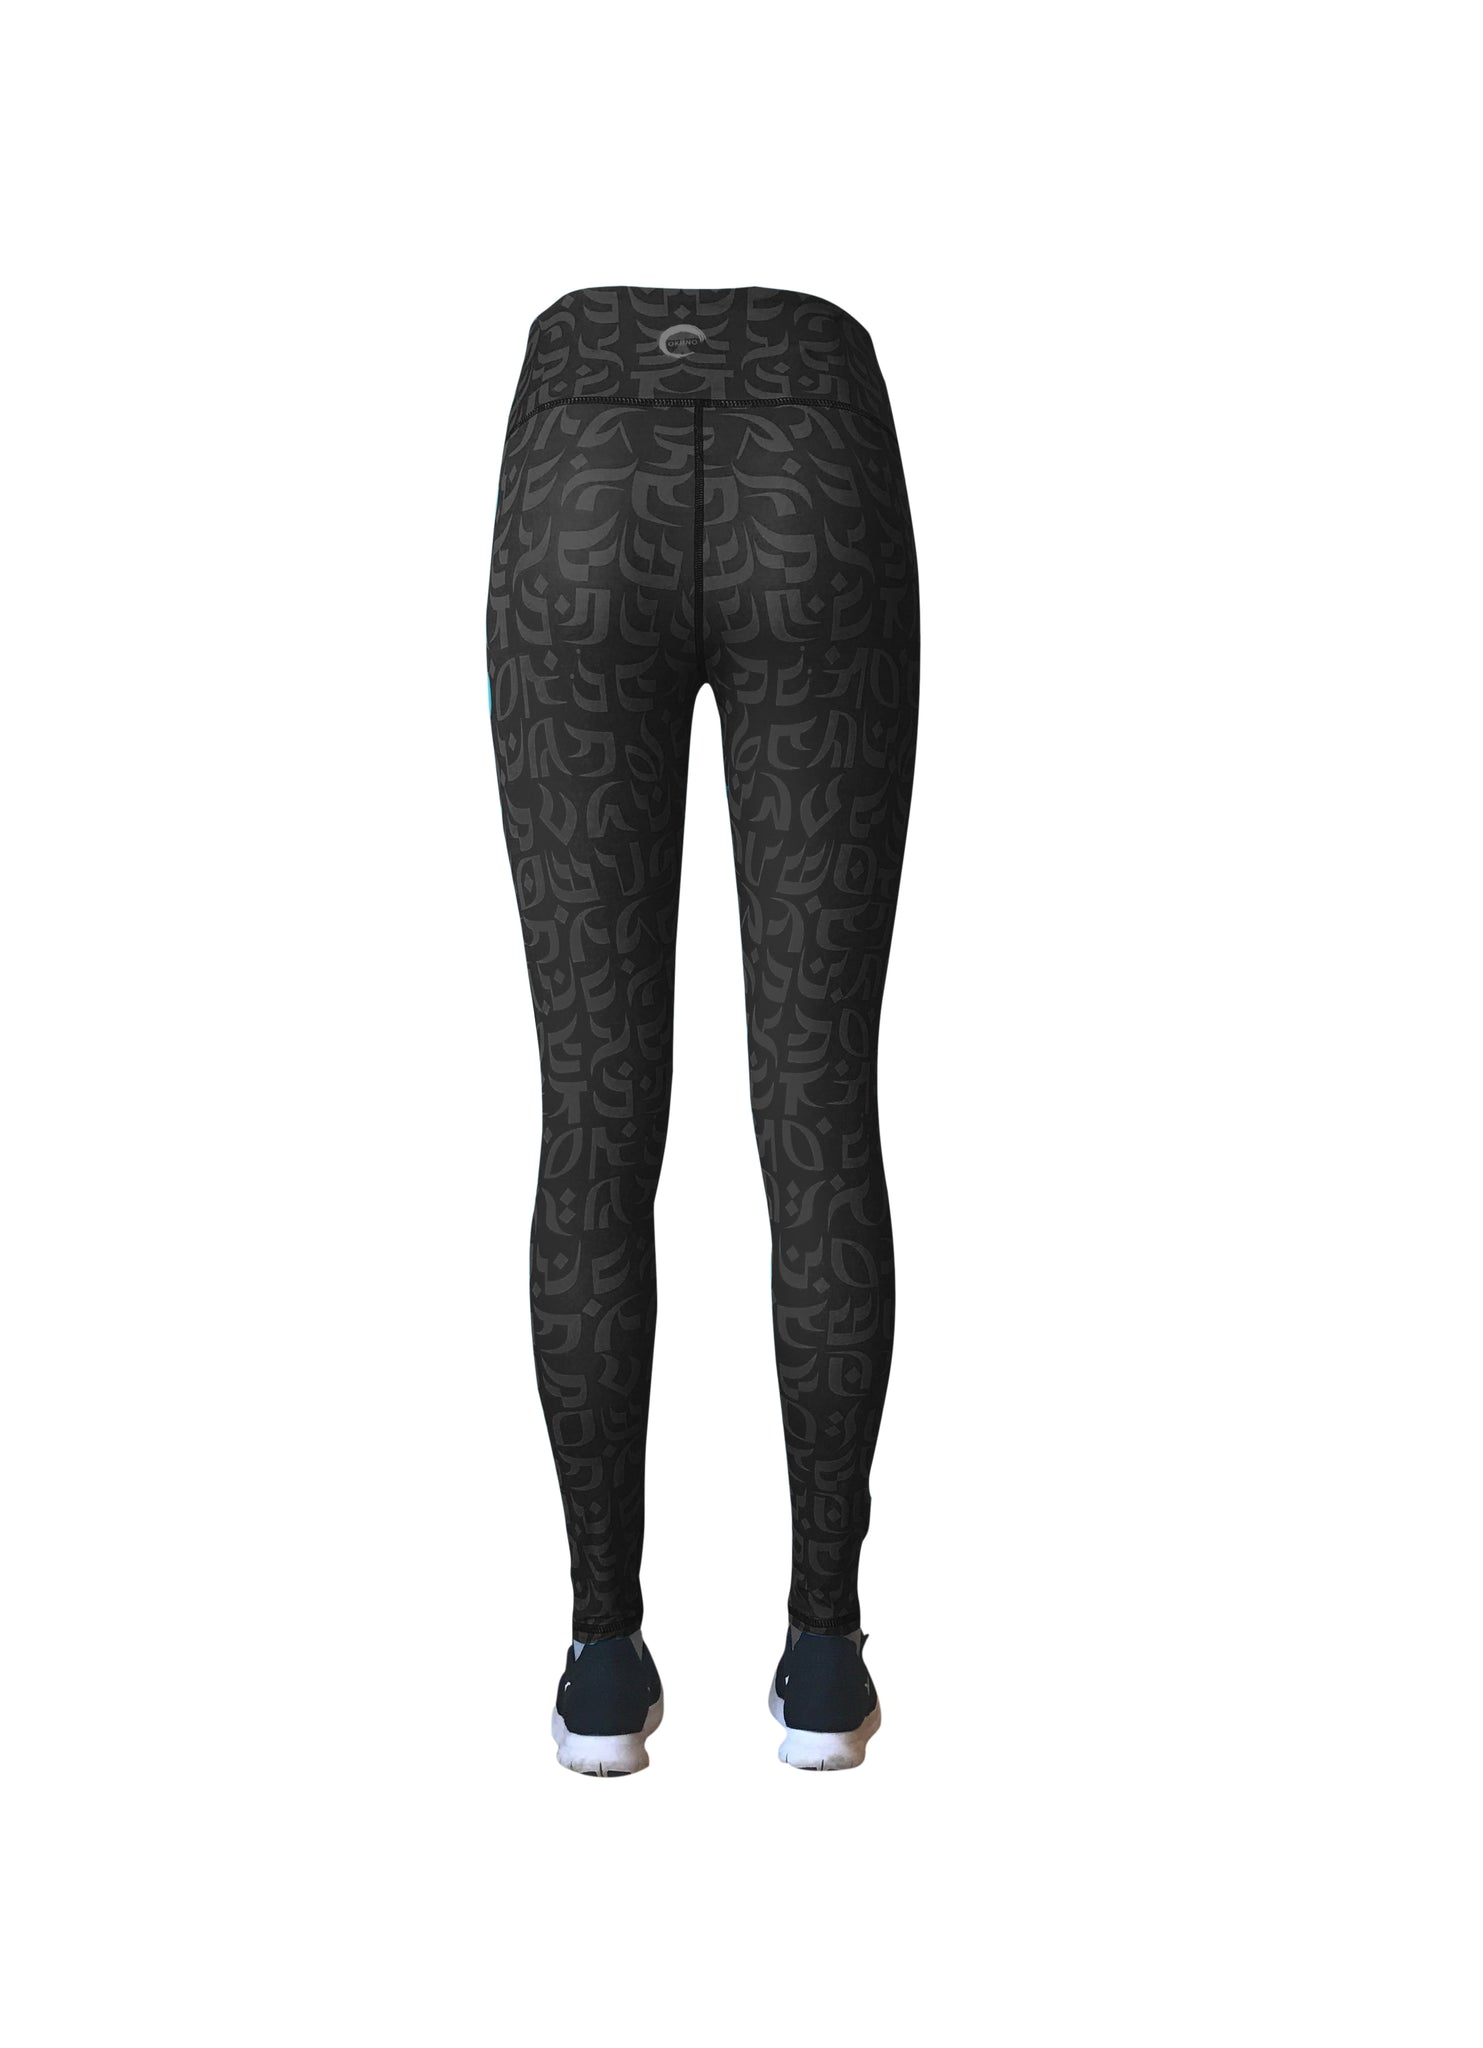 Midnight Cultura Leggings (LIMITED EDITION)